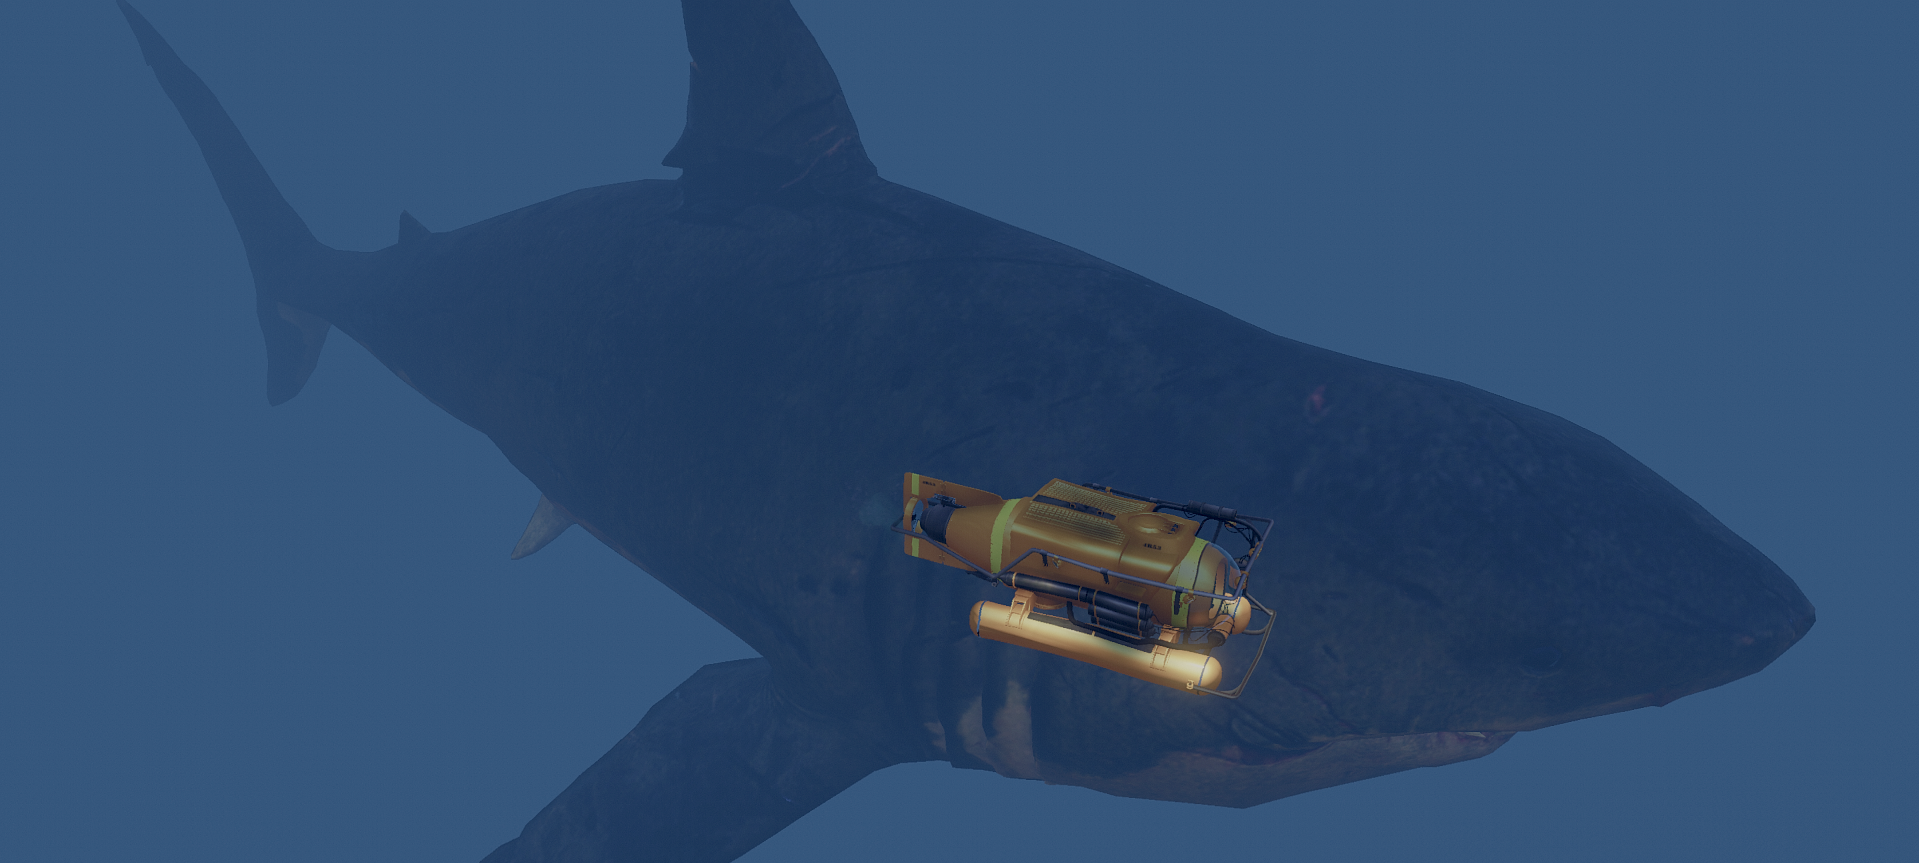 Resized Megalodon Shark [MEG: Monster of the Depth] - GTA5-Mods com